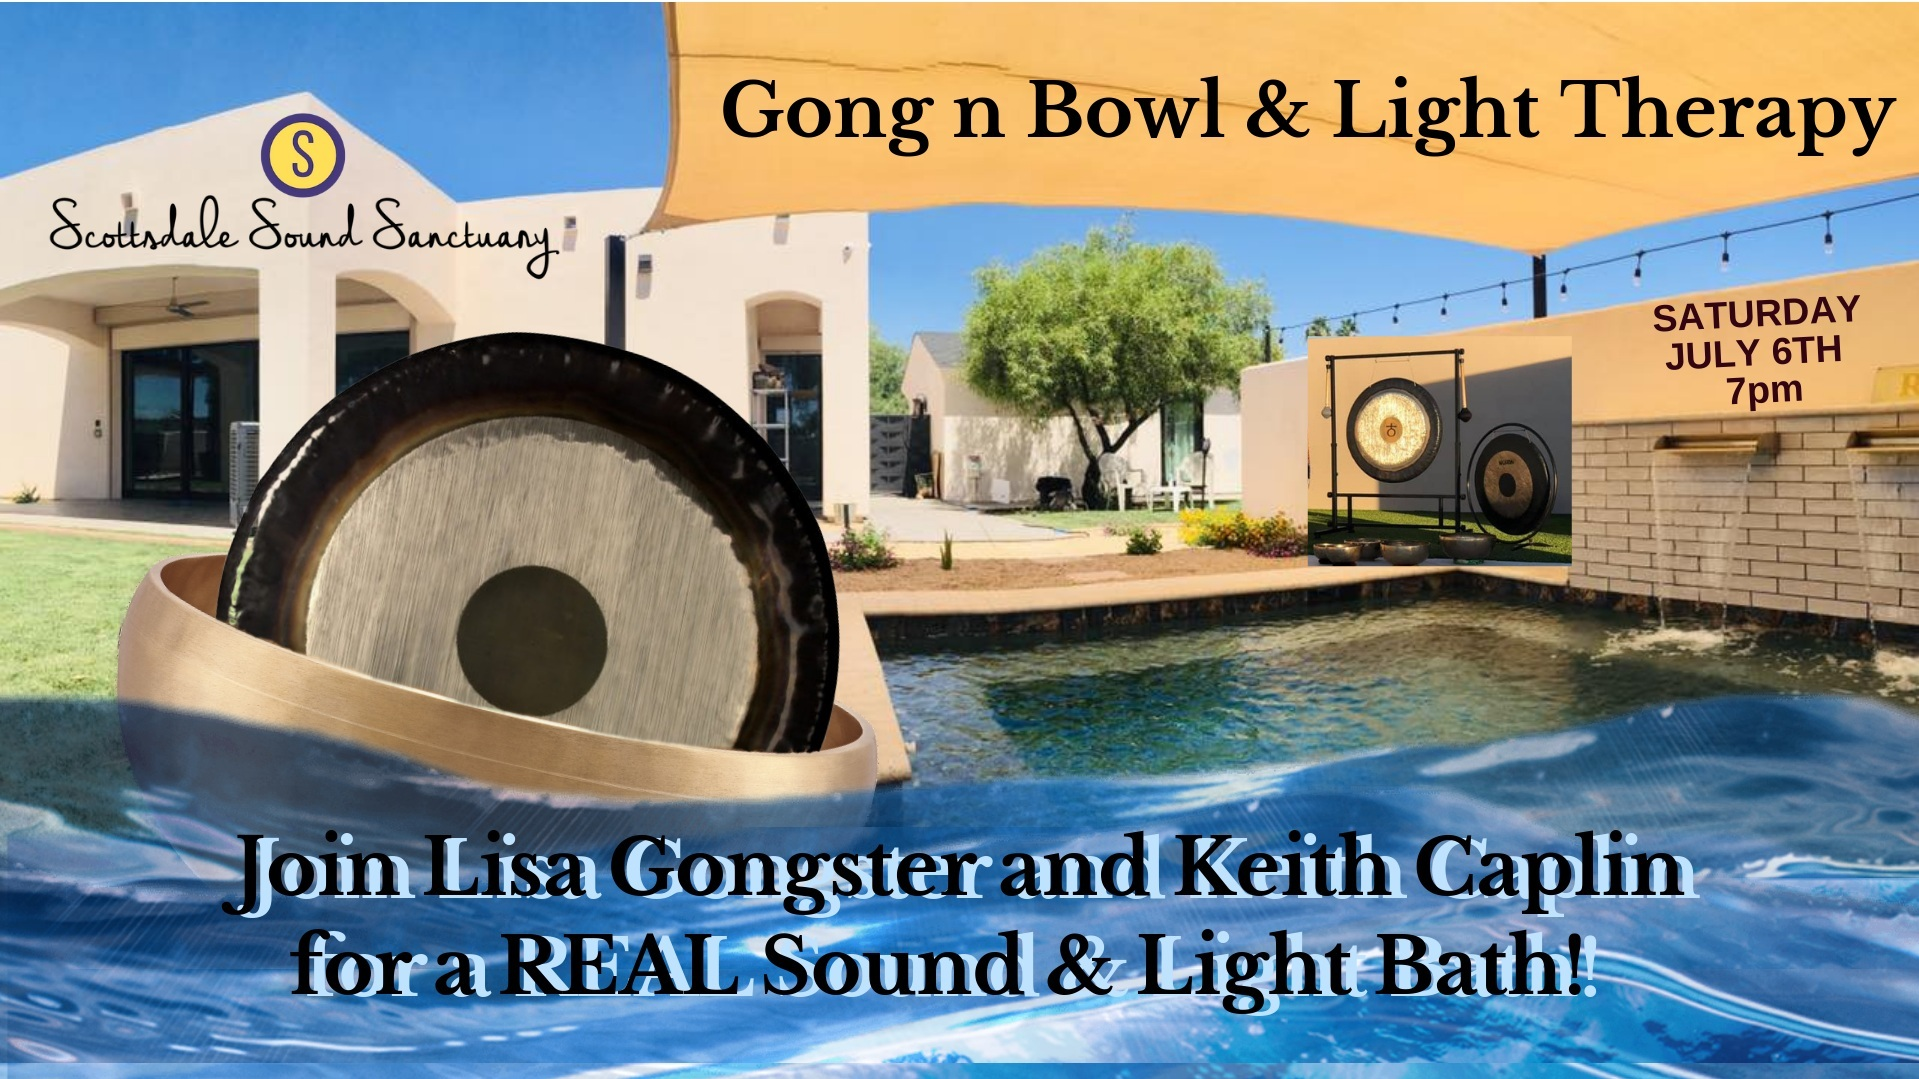 Gong and Bowls Pool Light Therapy  best.png